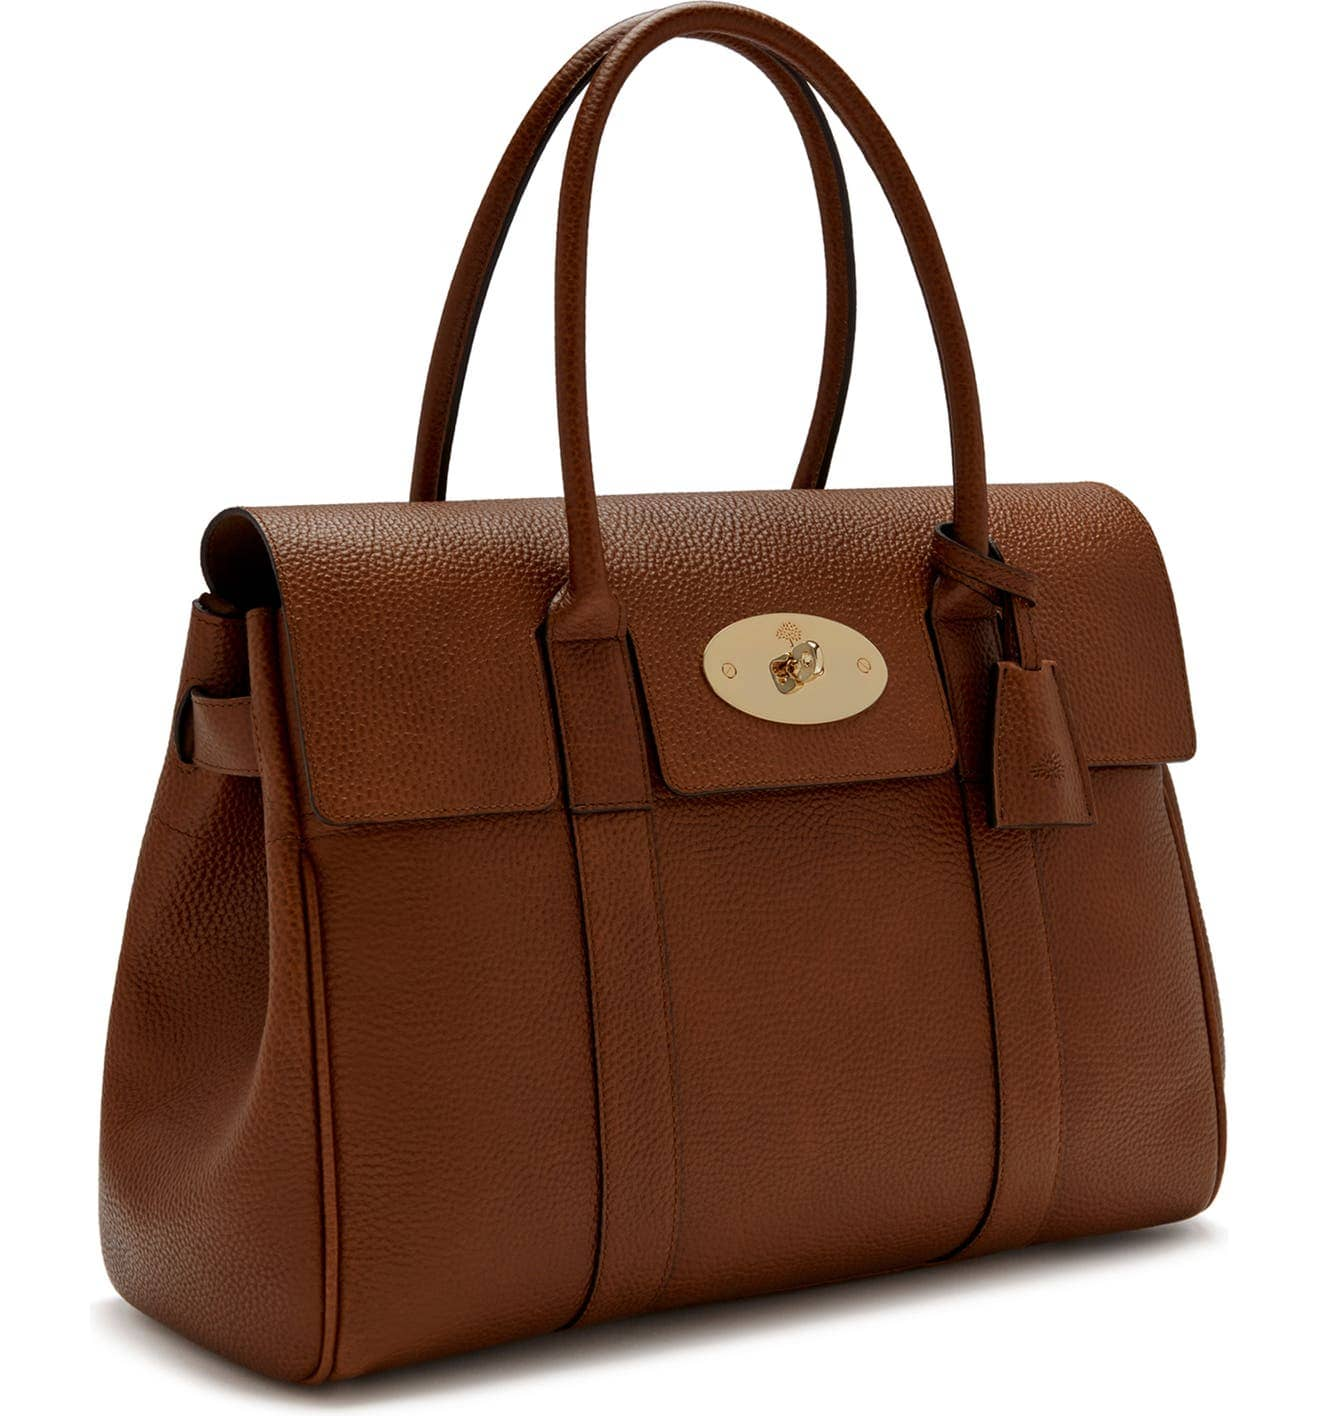 """Mulberry's Bayswater bag is considered a classic """"it"""" bag"""